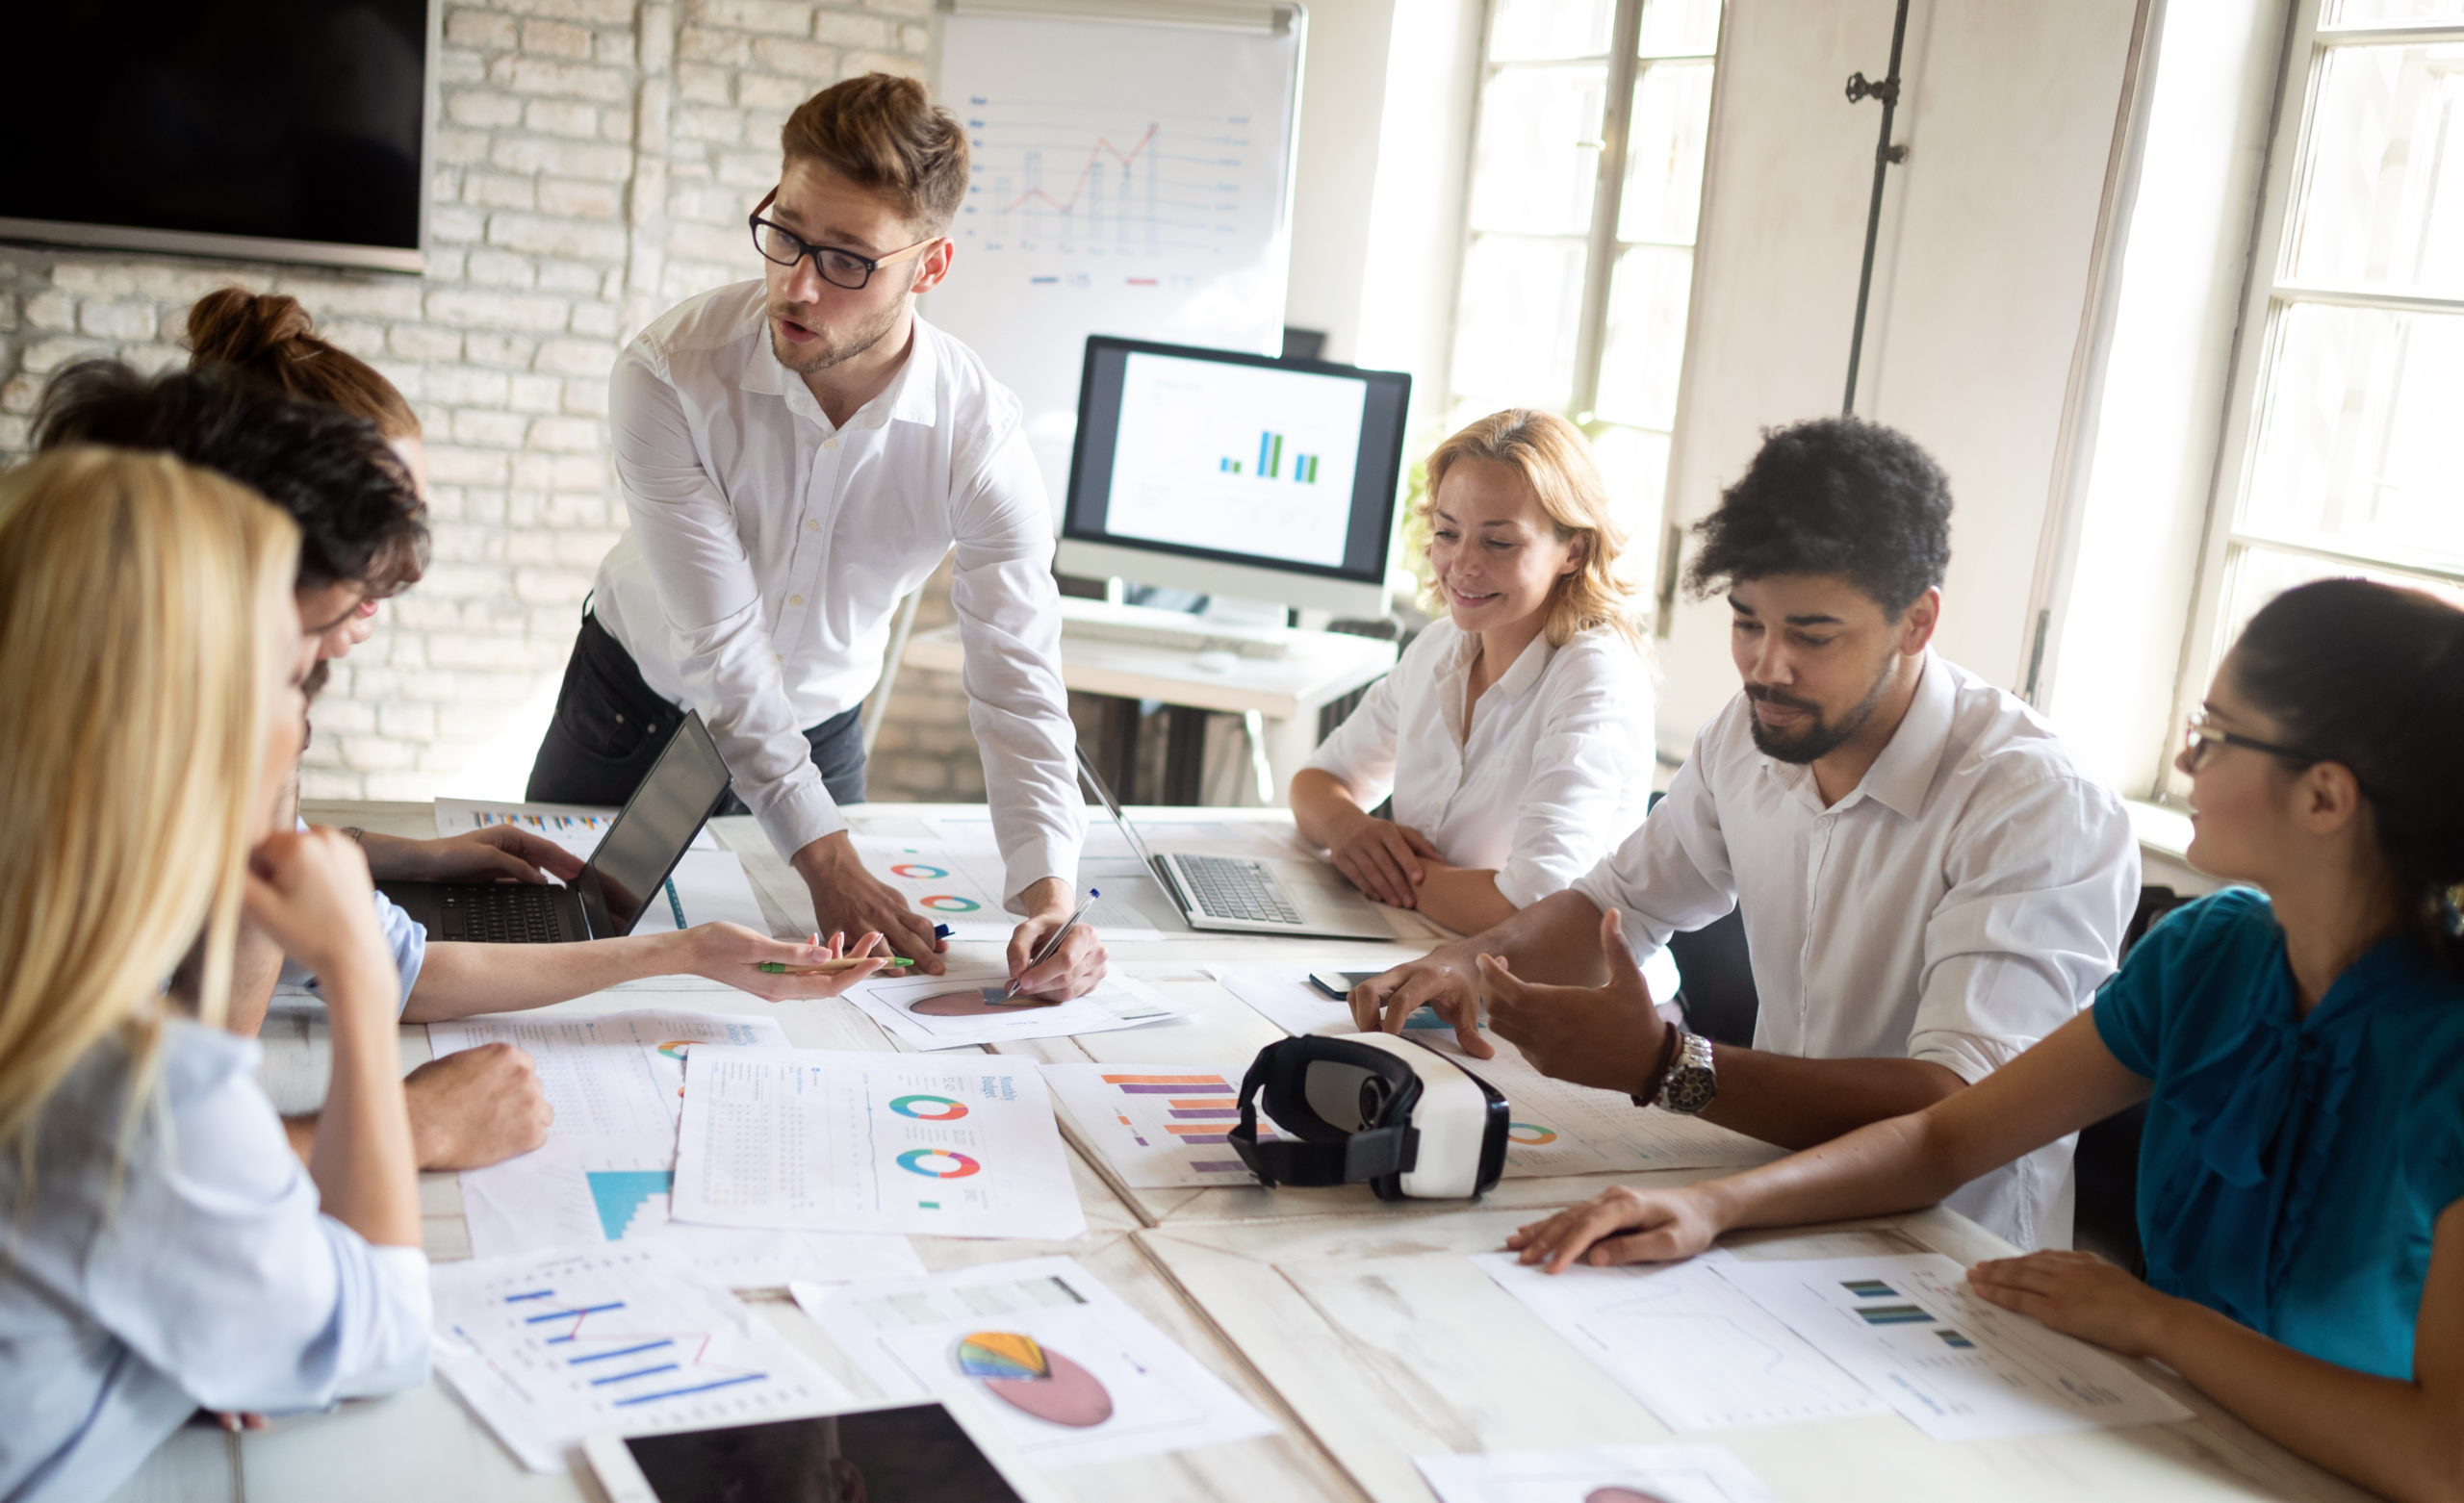 Business, technology and people concept - creative team or designers working in office